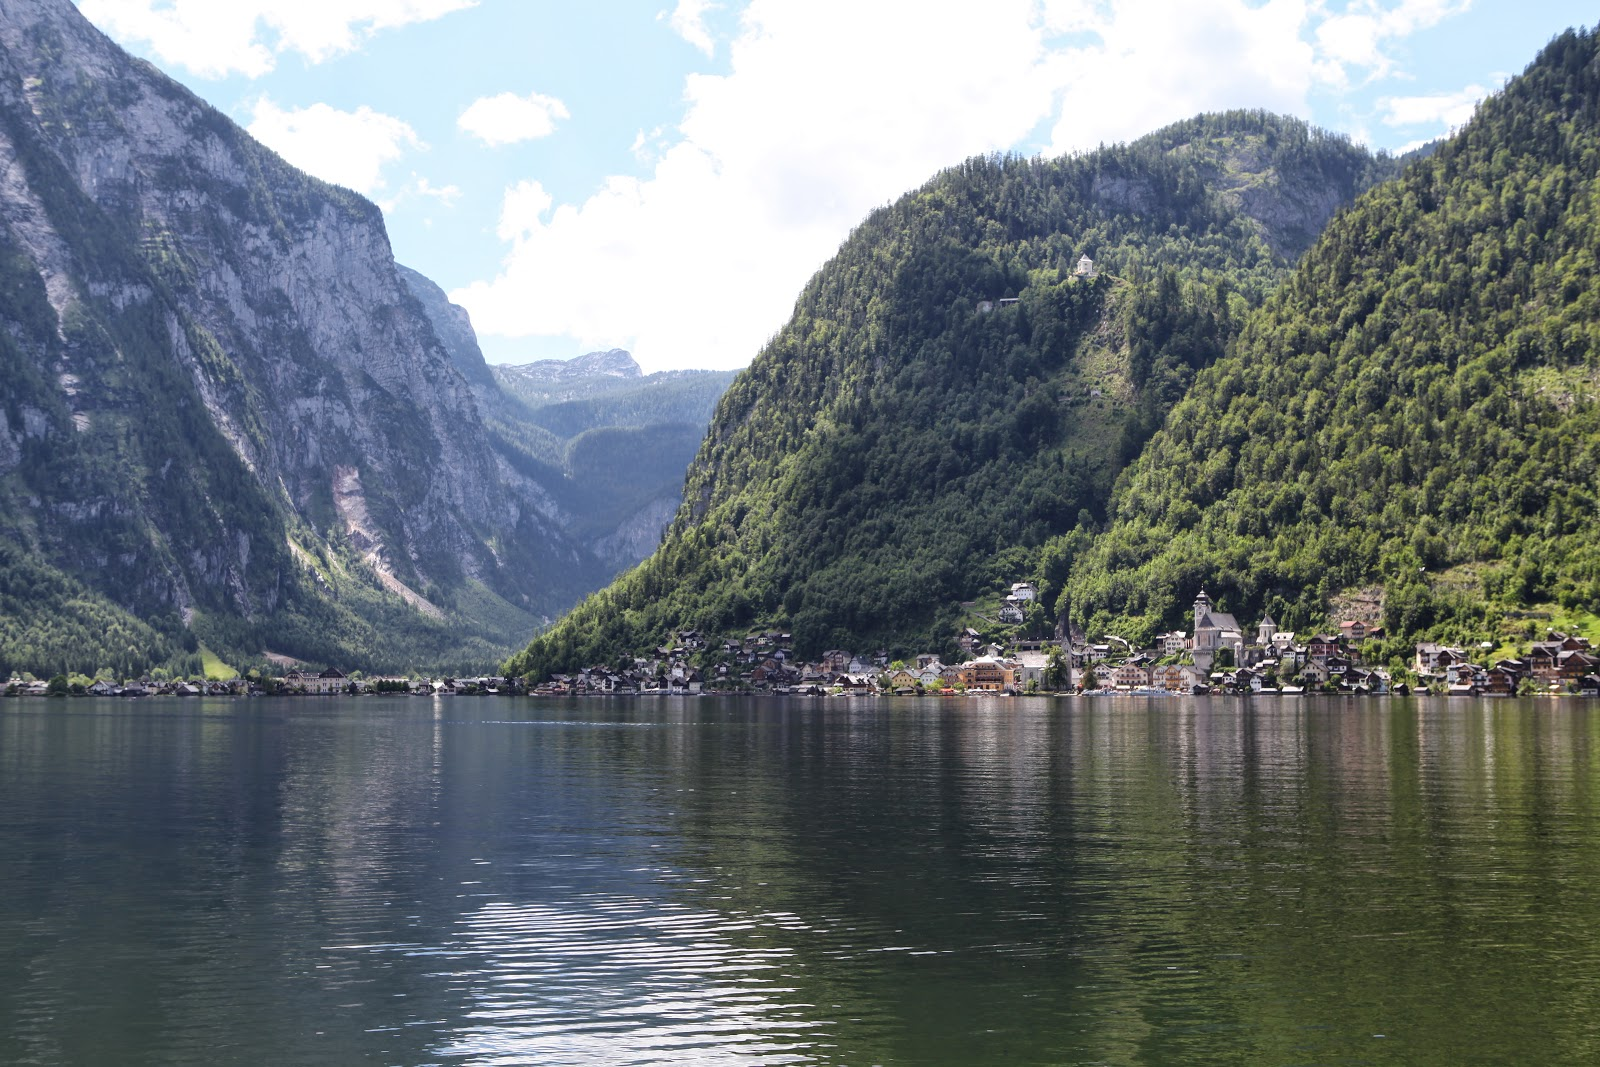 Looking over the lake towards Hallstatt village from the bike path which is suspended in parts above the lake!